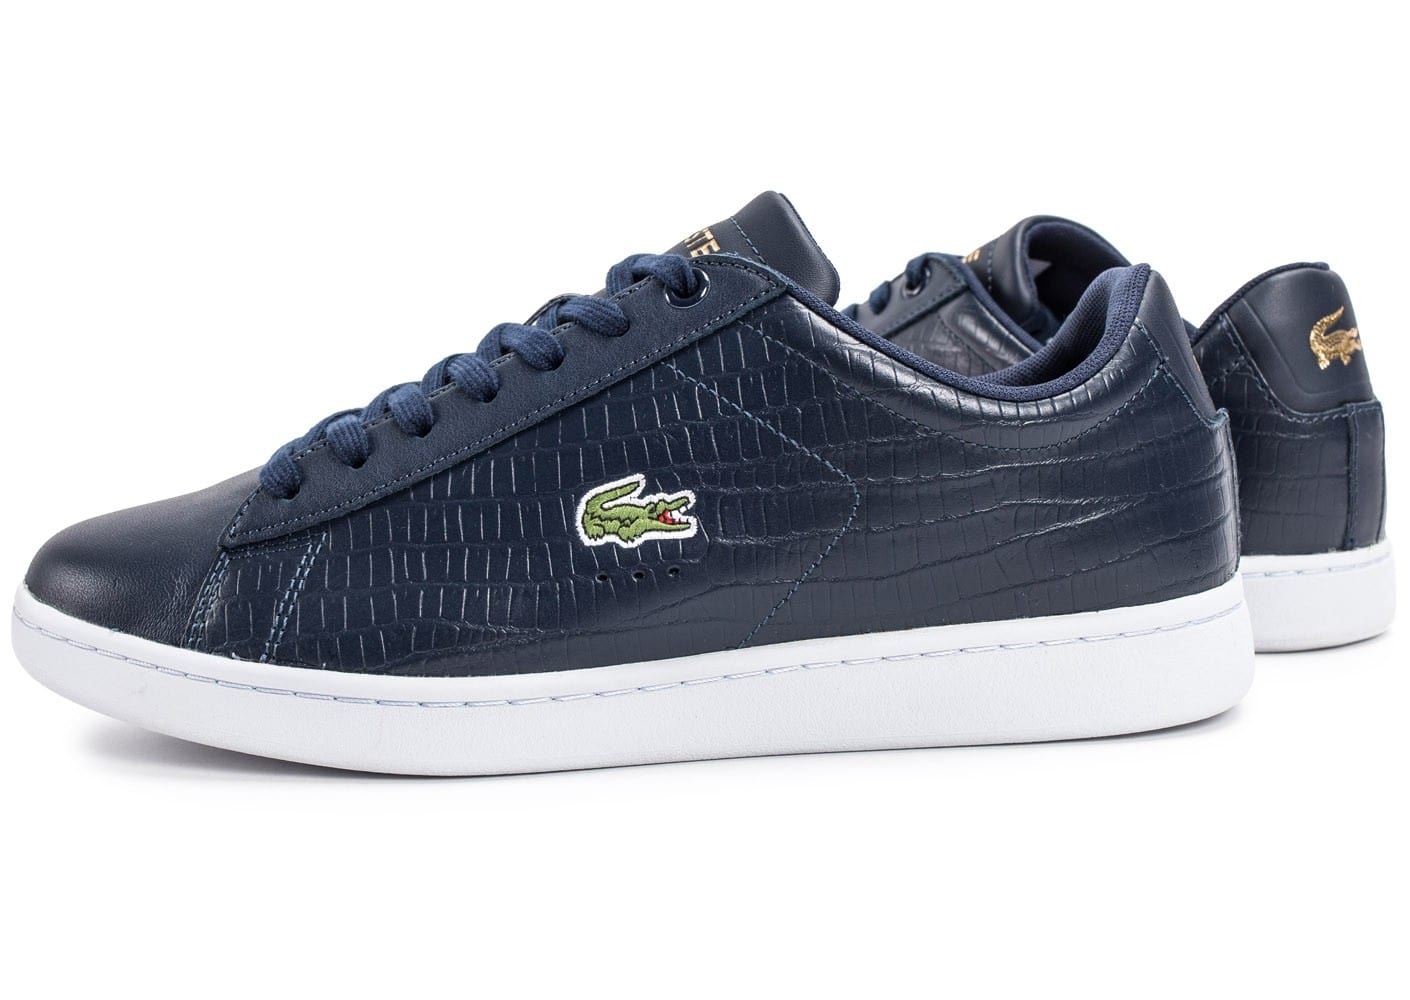 Chaussures Lacoste Trajet bleues Fashion femme viLBy5aW